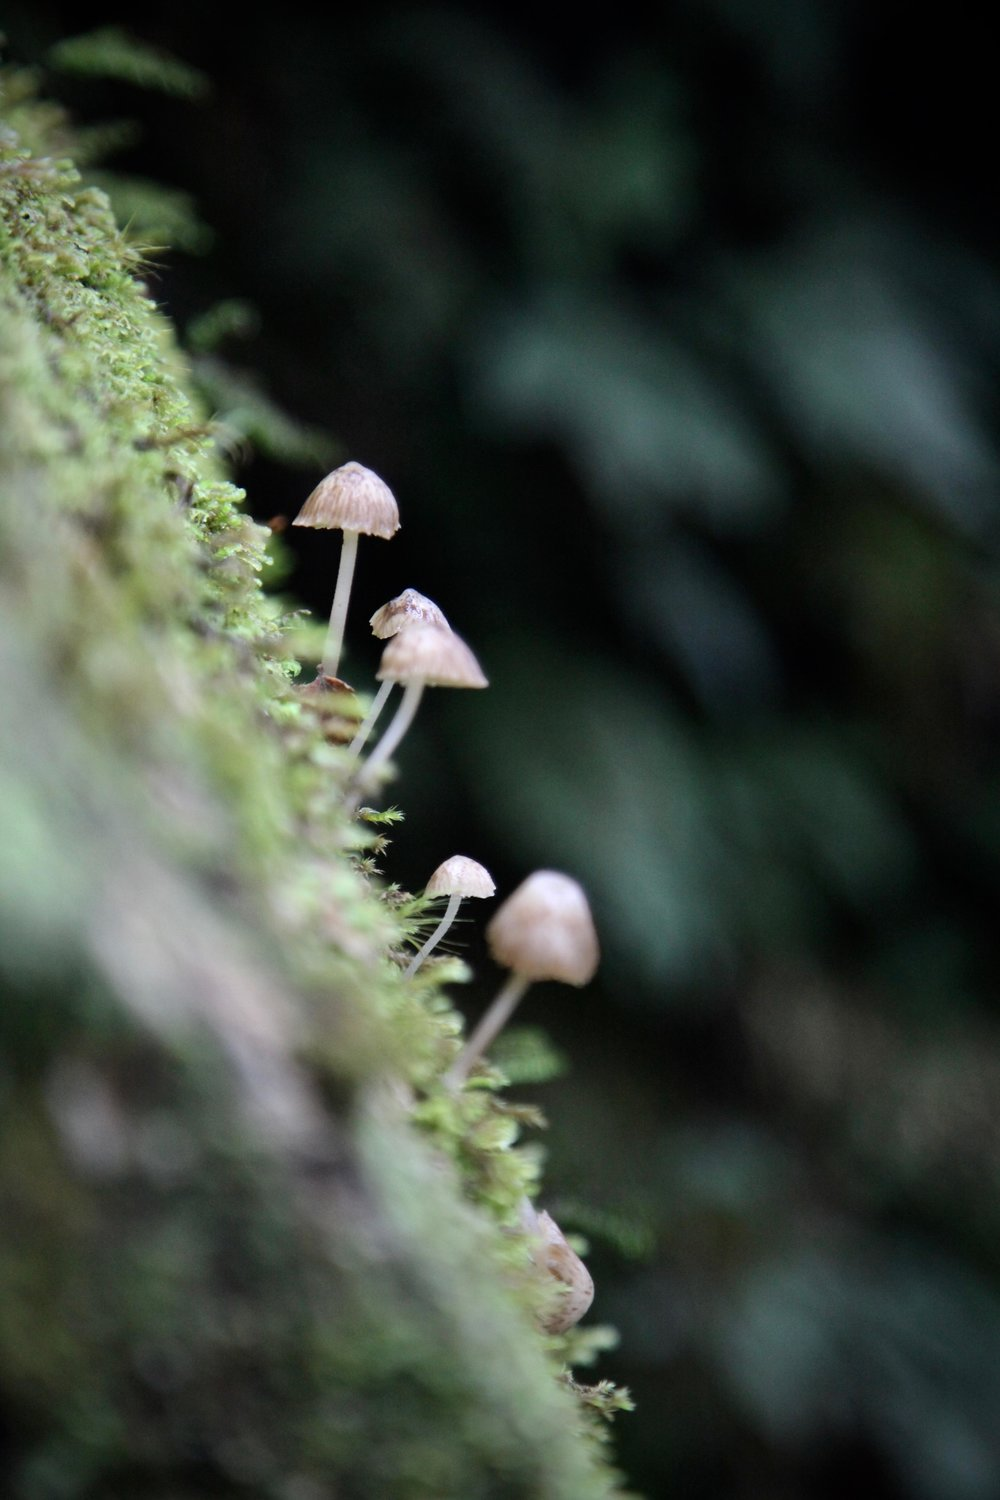 tiny-fungi-key-summit-fiordland.jpg